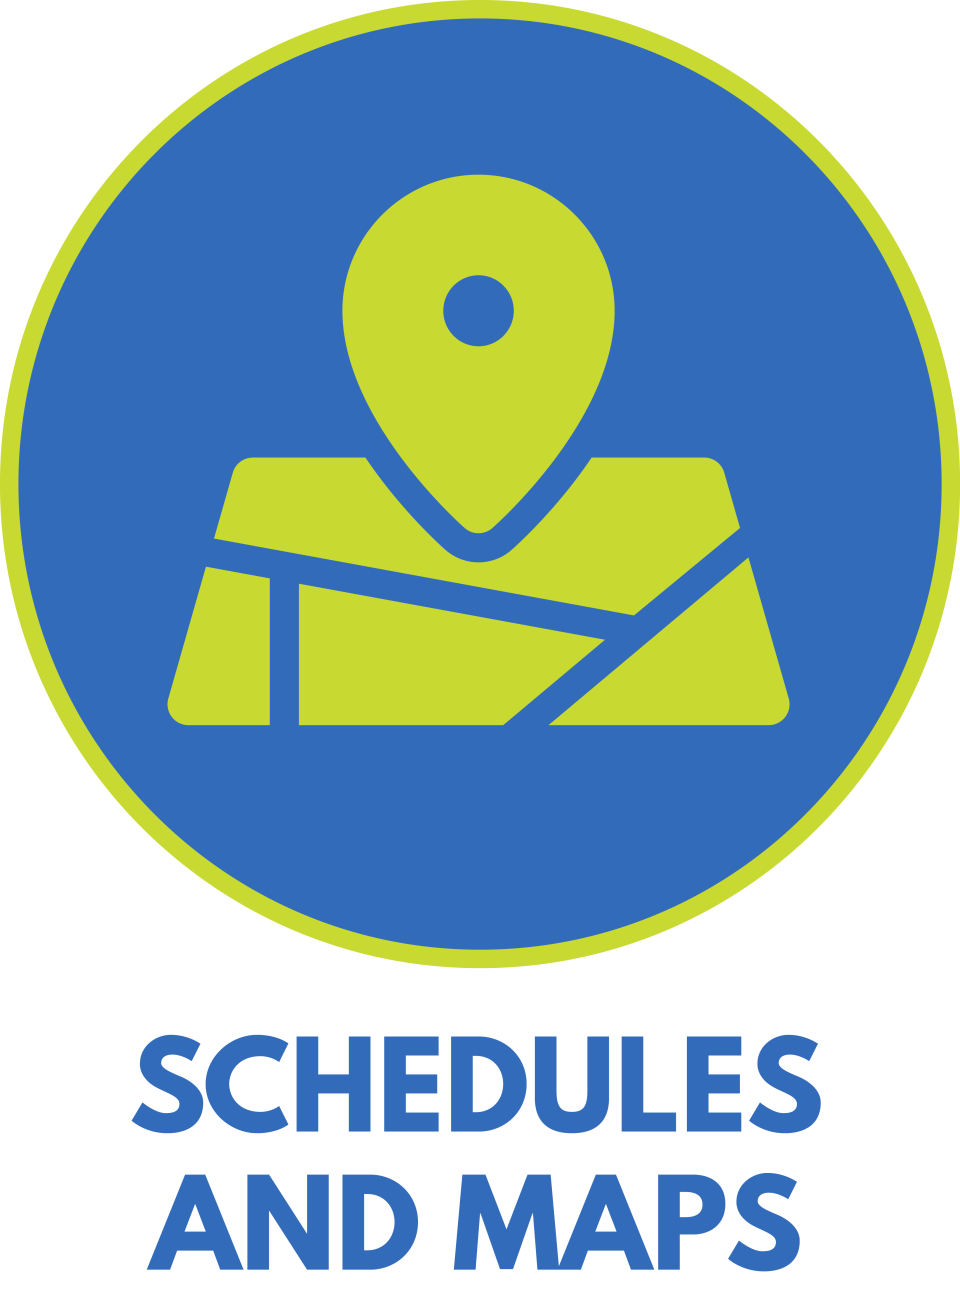 Schedules and Maps